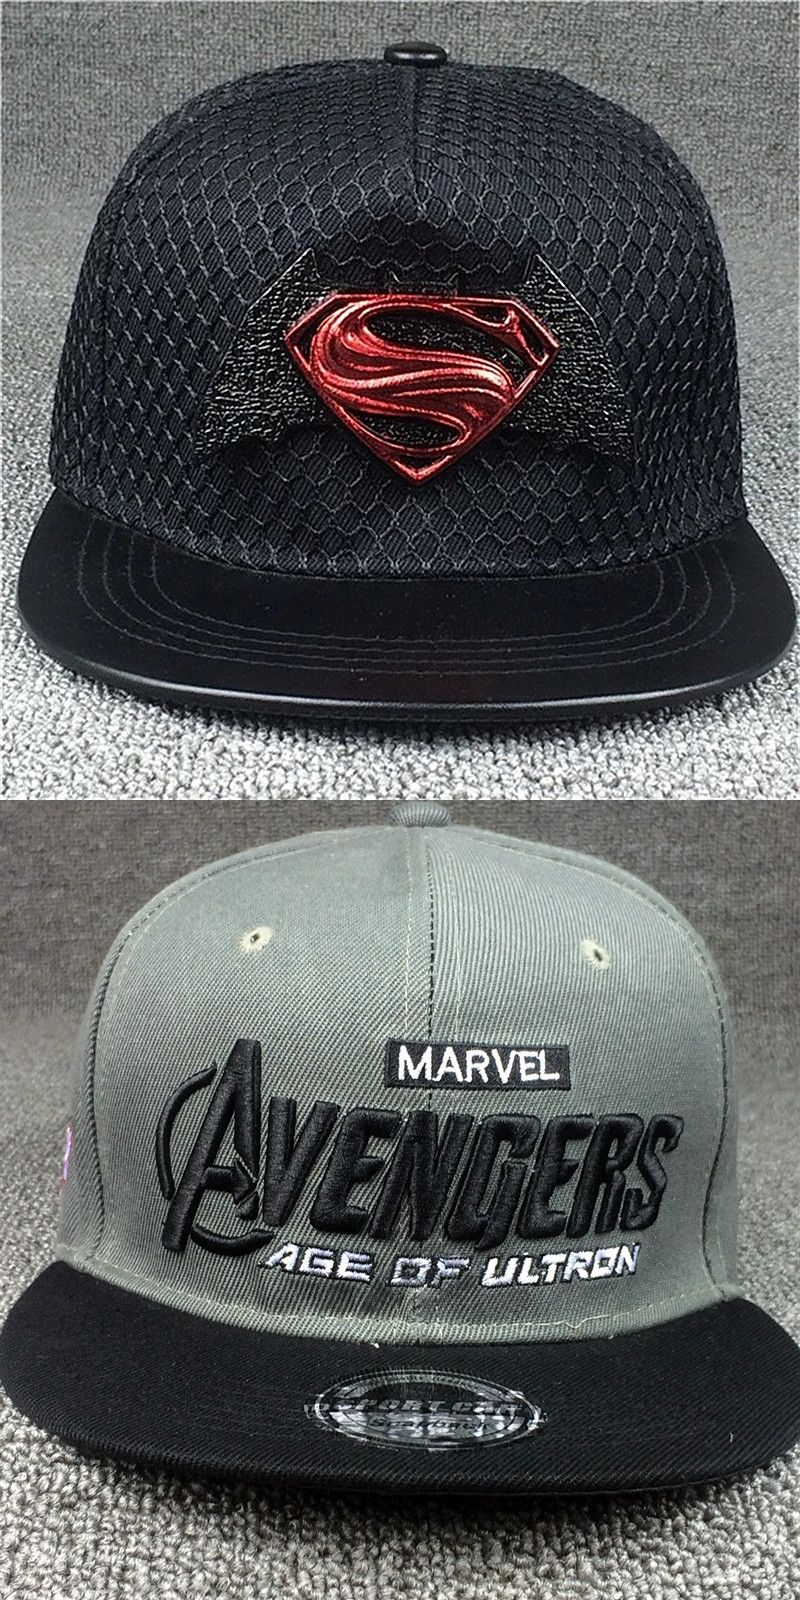 2015 marvel avengers embroidery bone snapback cartoon Iron man baseball cap  Captain America gorras planas chapeusfor 838d7d9d359